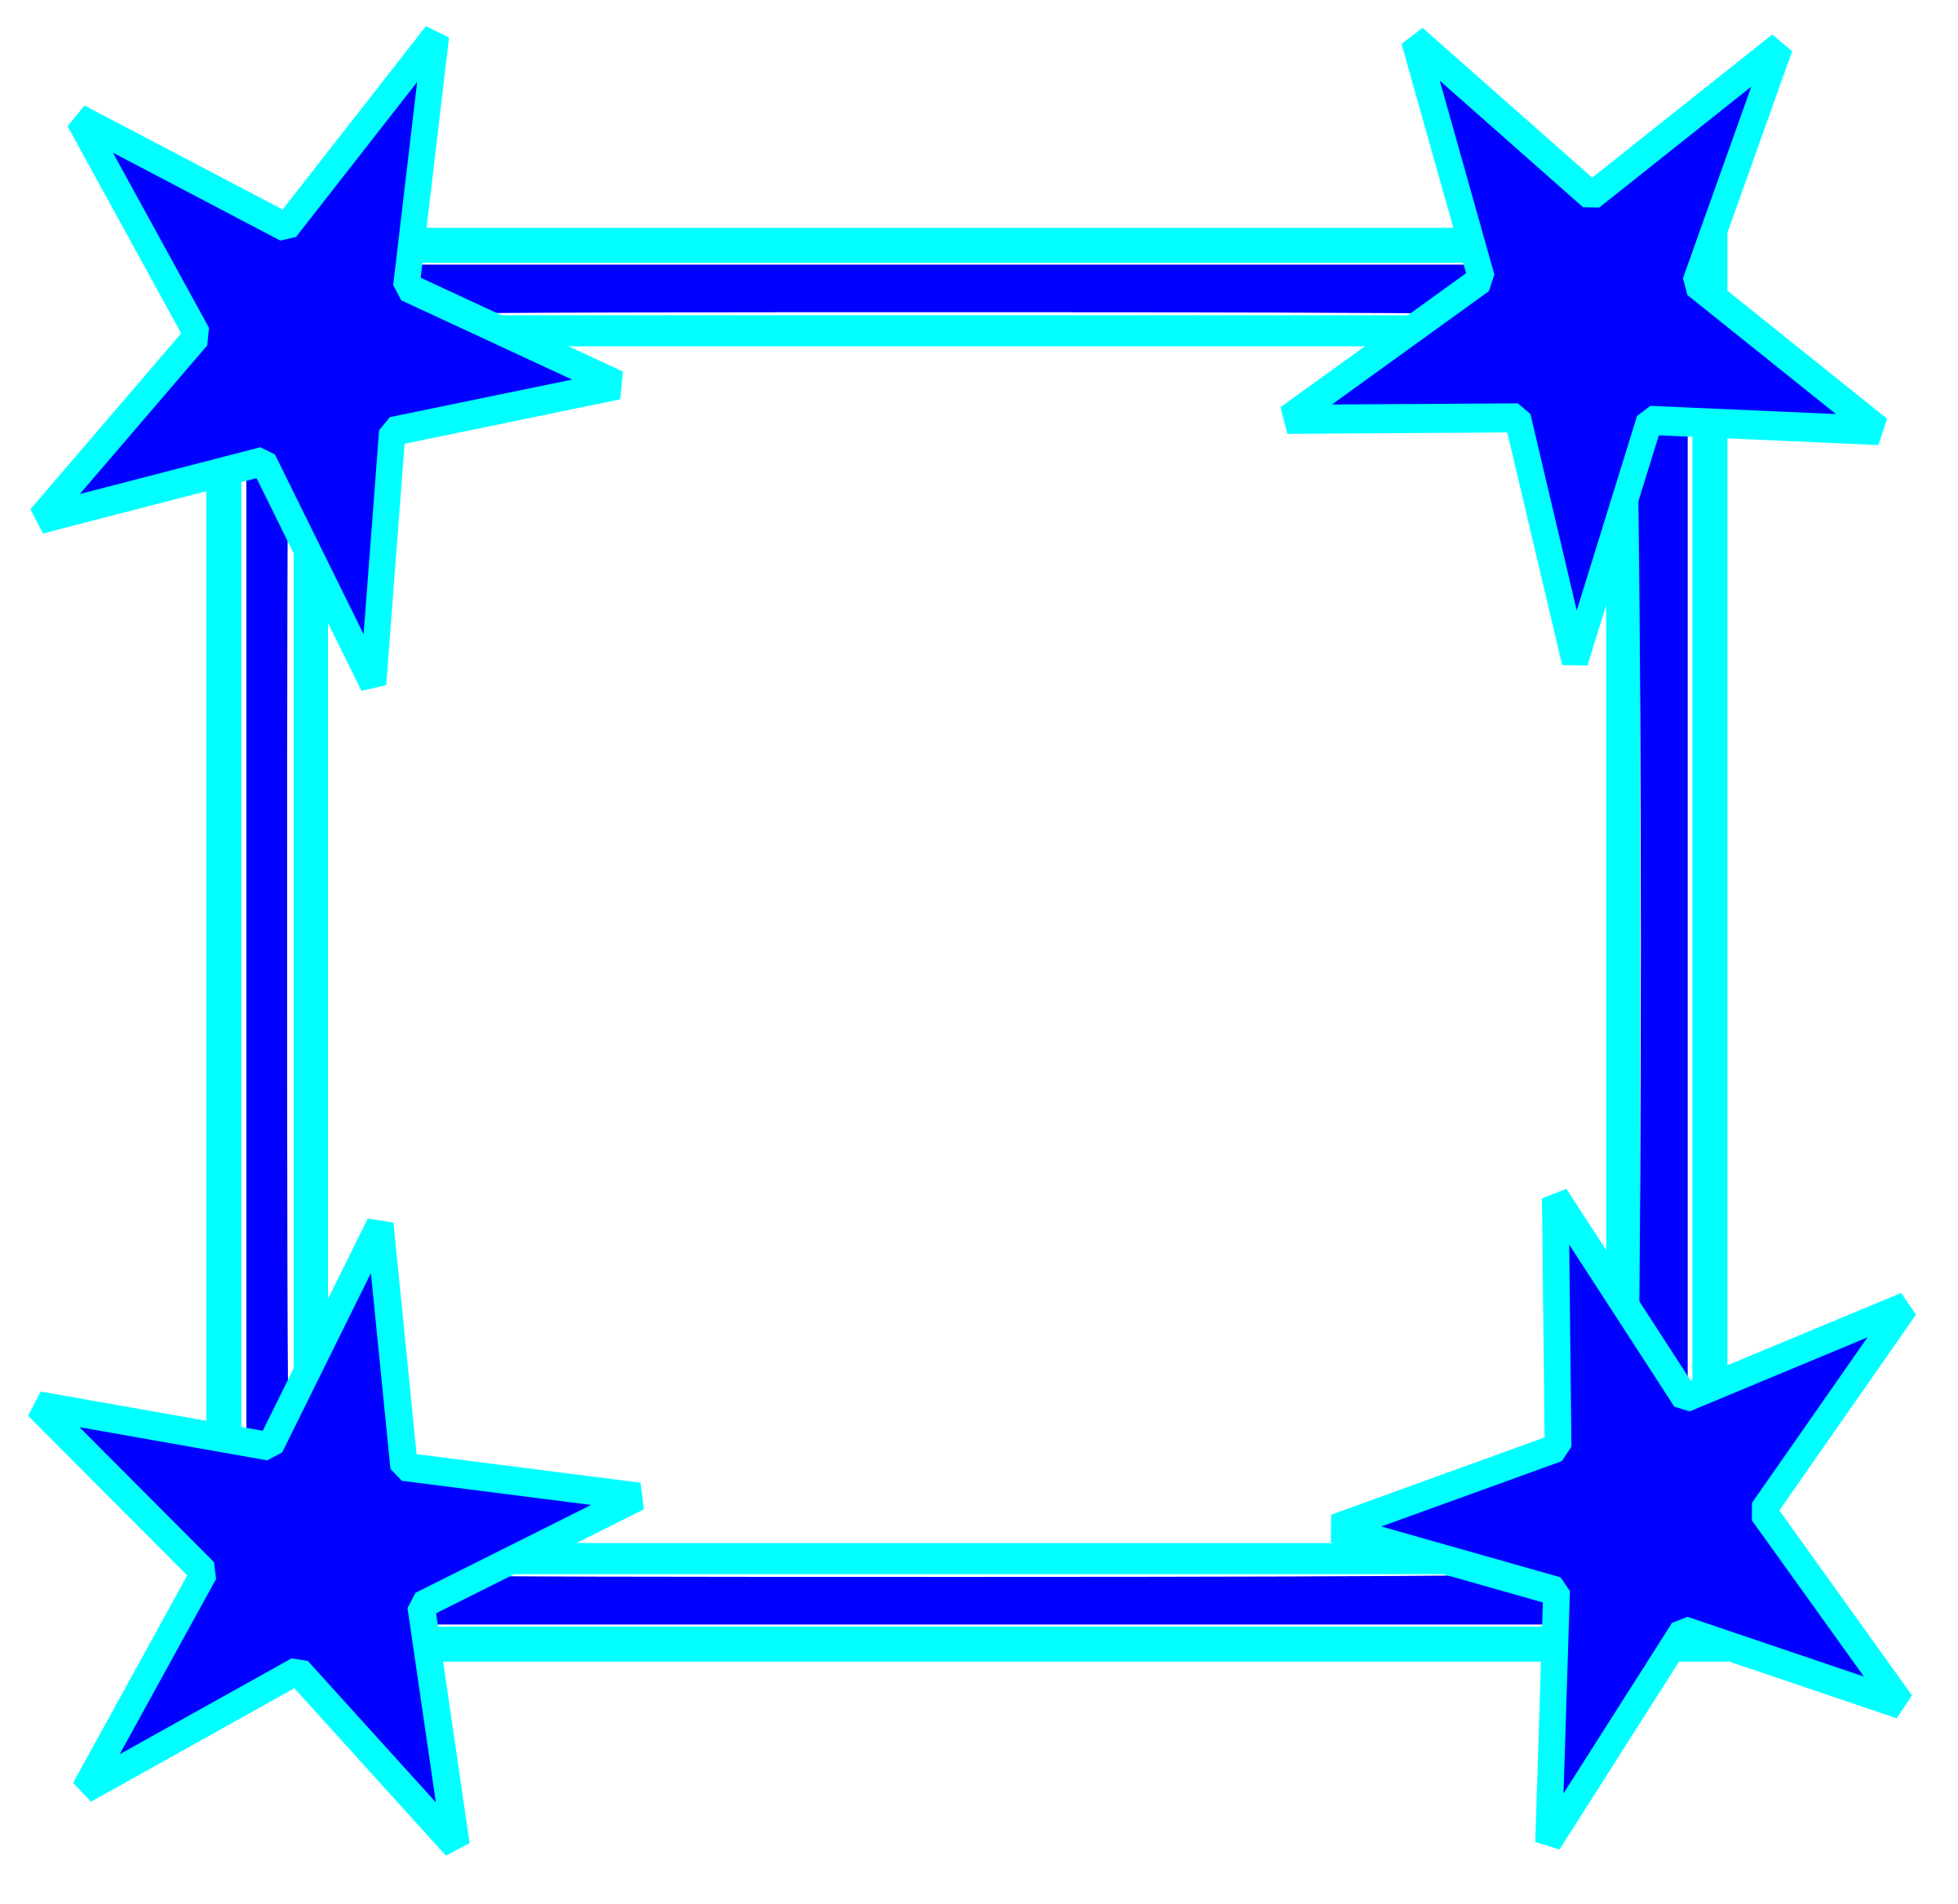 Star frame clipart png royalty free library Clipart - Simple Bright Blue Star Cornered Frame png royalty free library